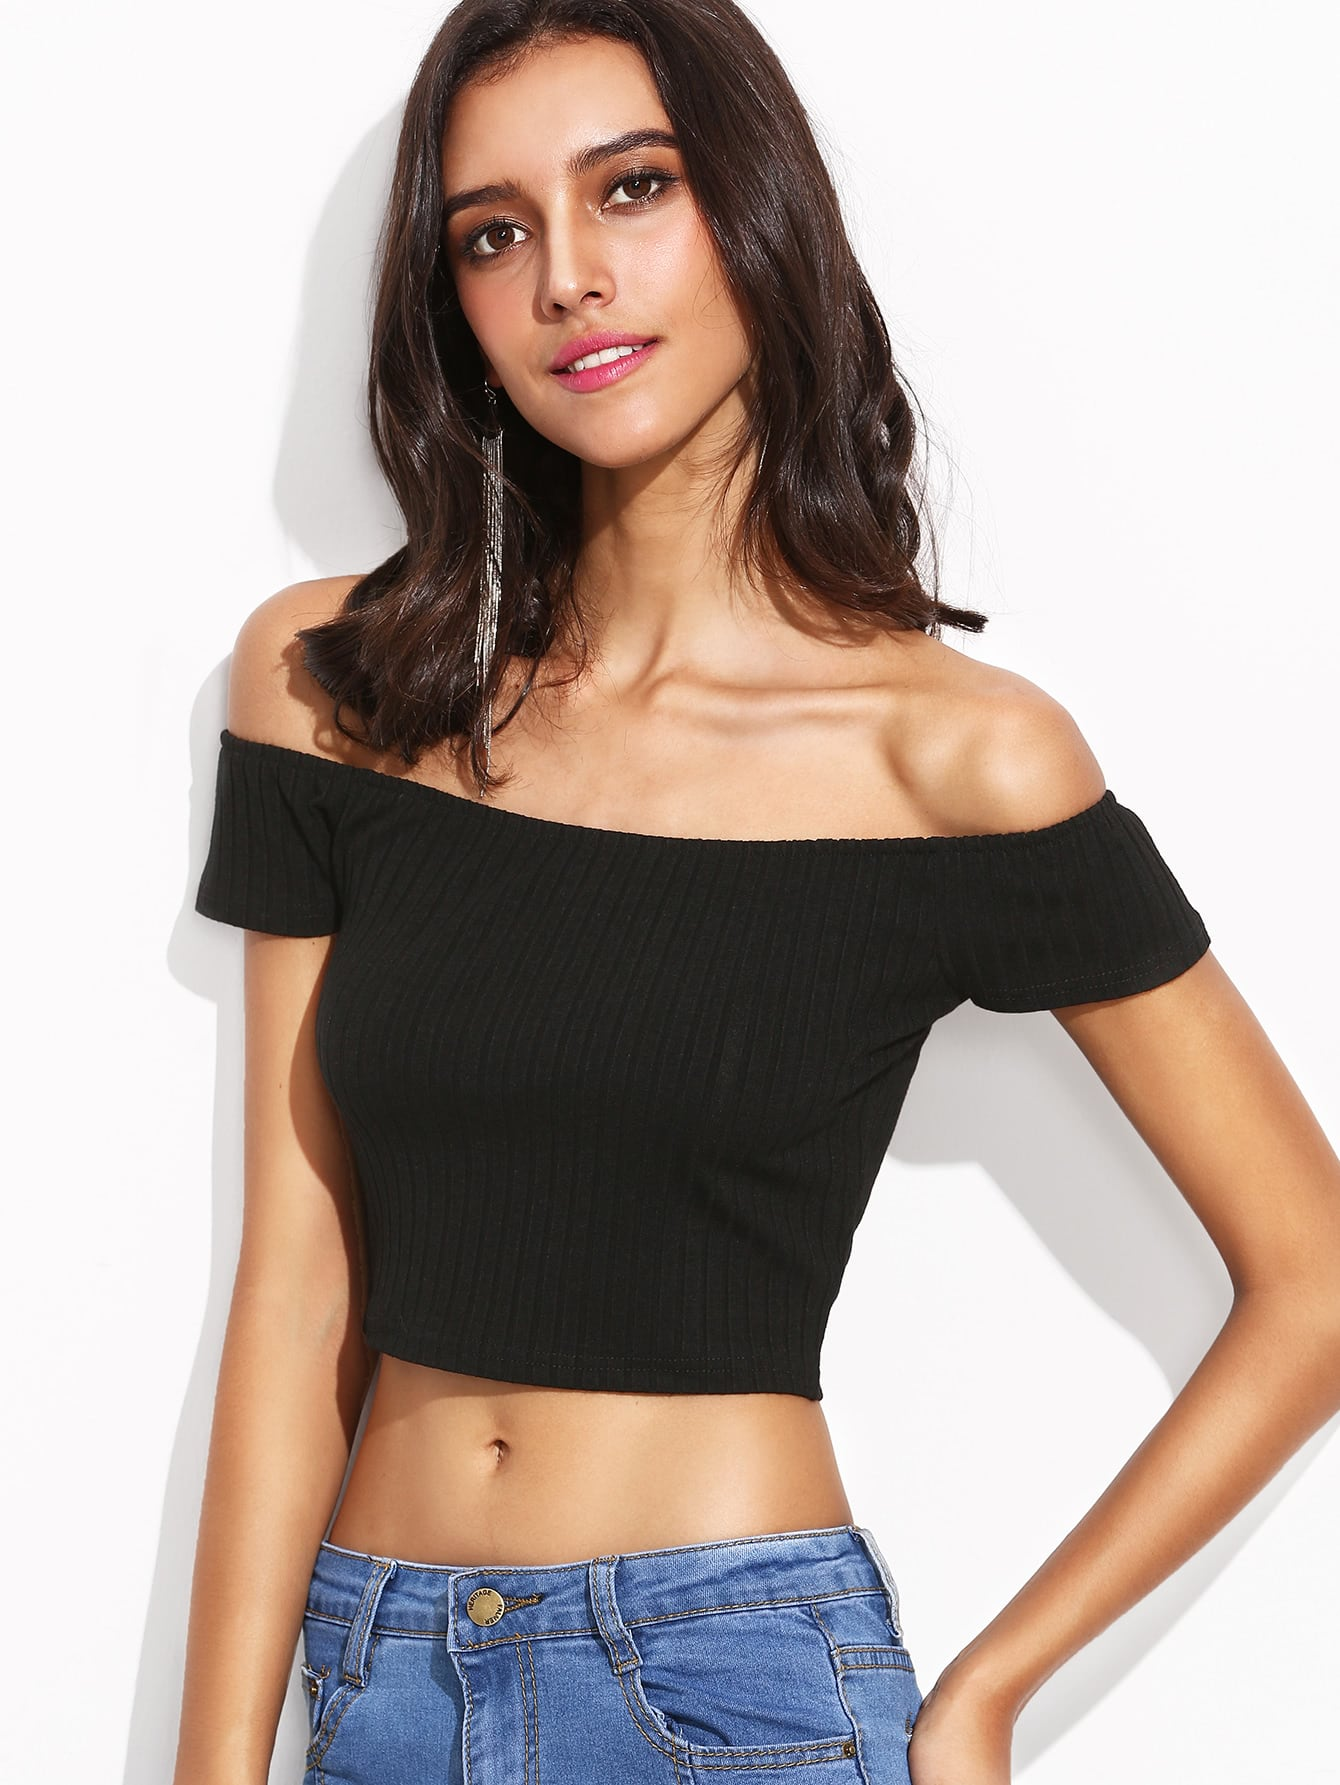 Black Off The Shoulder Ribbed Crop T-shirtBlack Off The Shoulder Ribbed Crop T-shirt<br><br>color: Black<br>size: L,M,S,XL